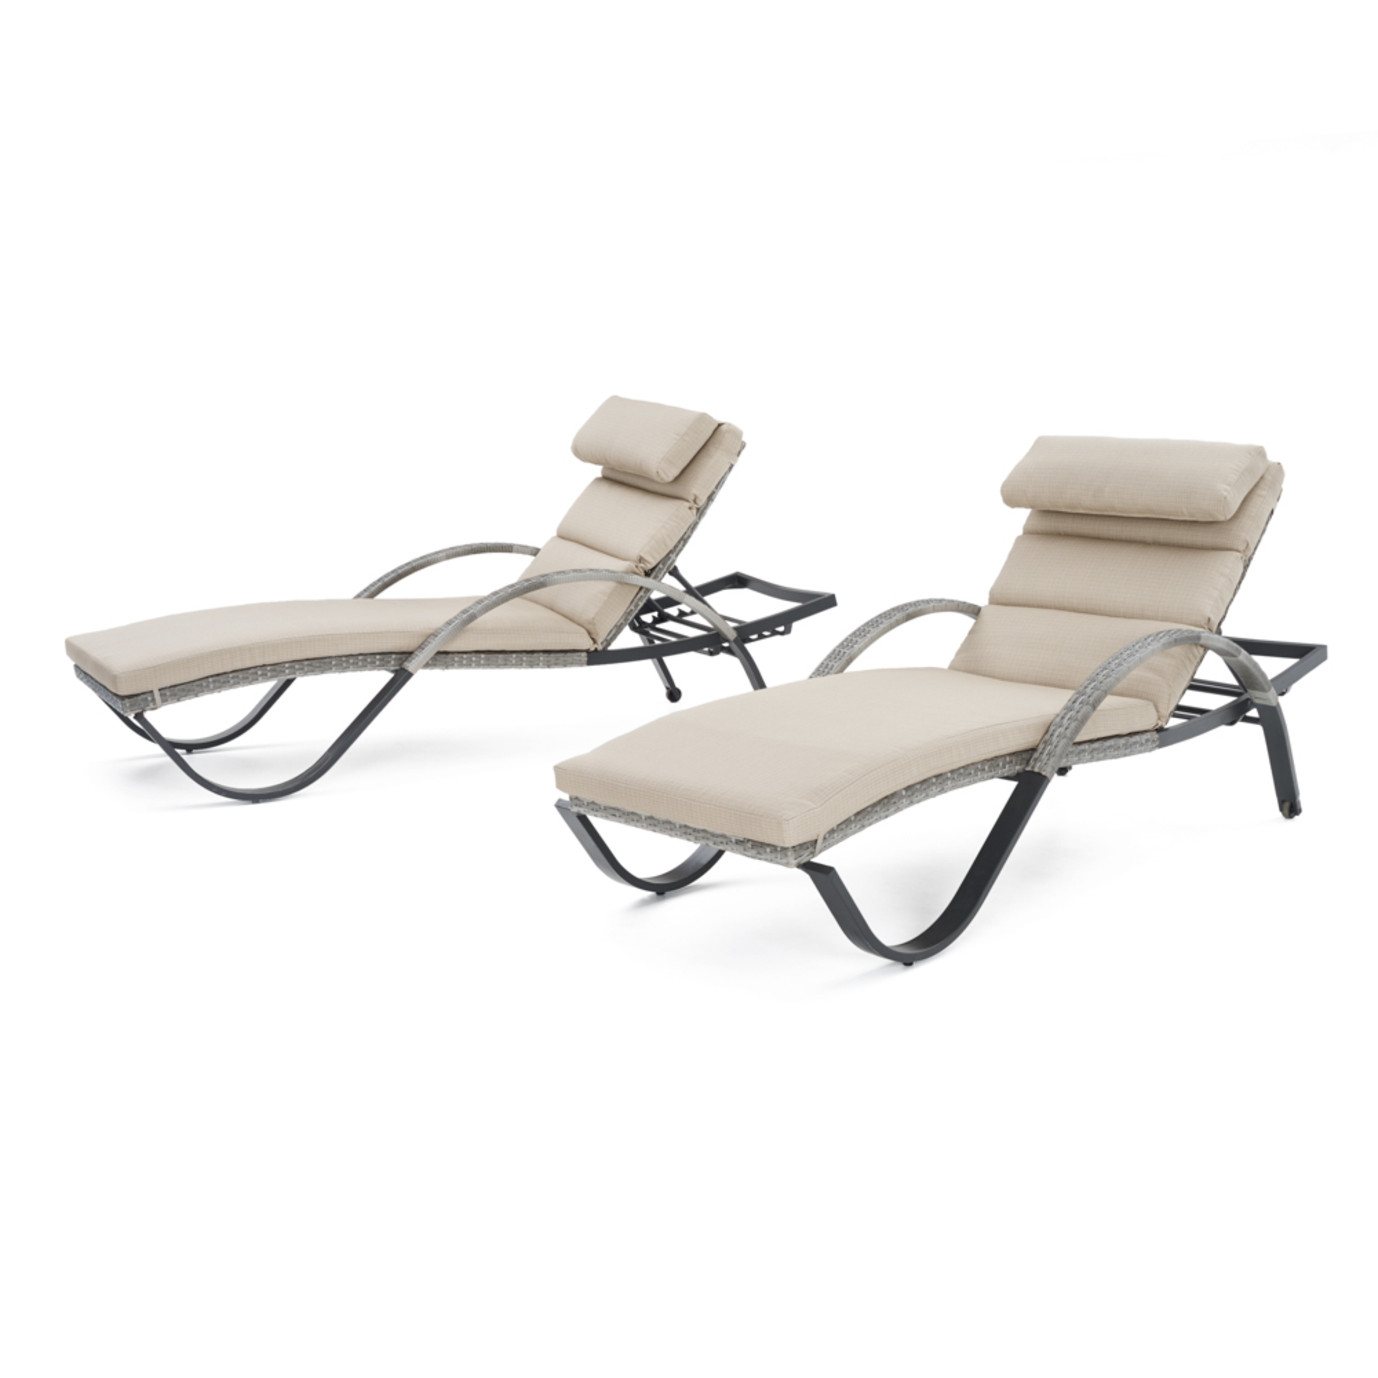 Cannes™ Chaise Lounges with Cushions - Slate Grey